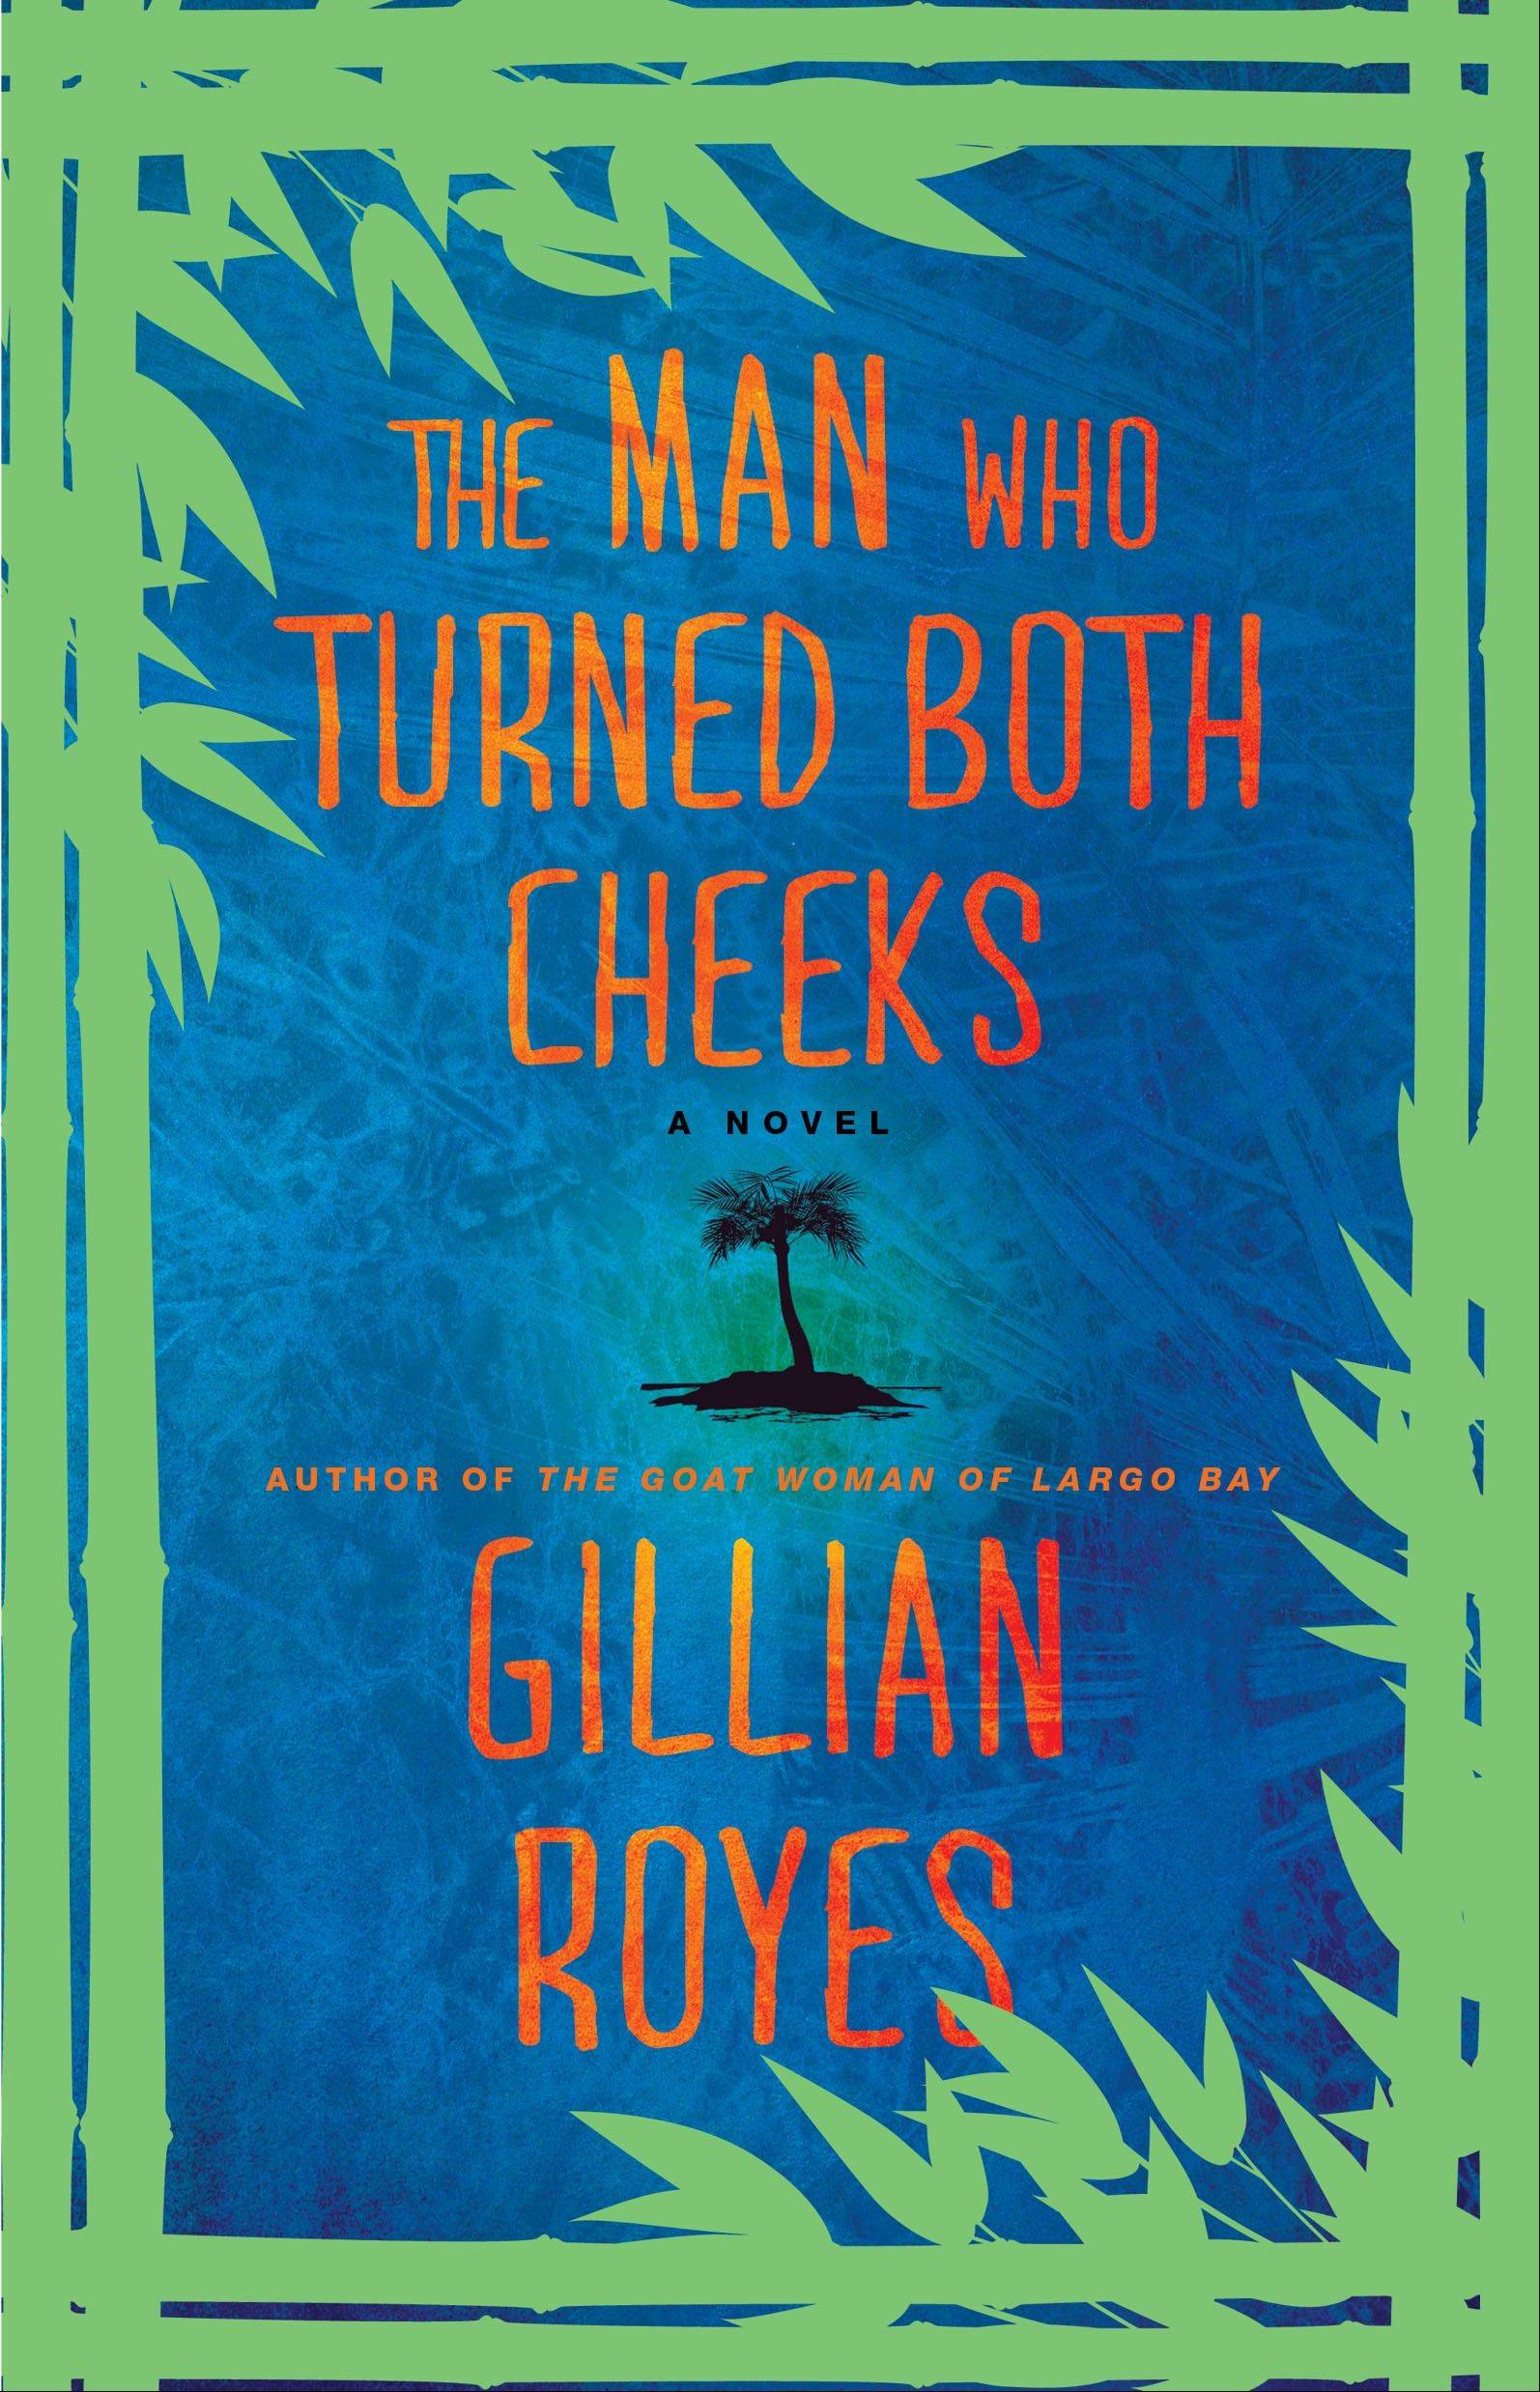 """The Man Who Turned Both Cheeks"" by Gillian Royes"